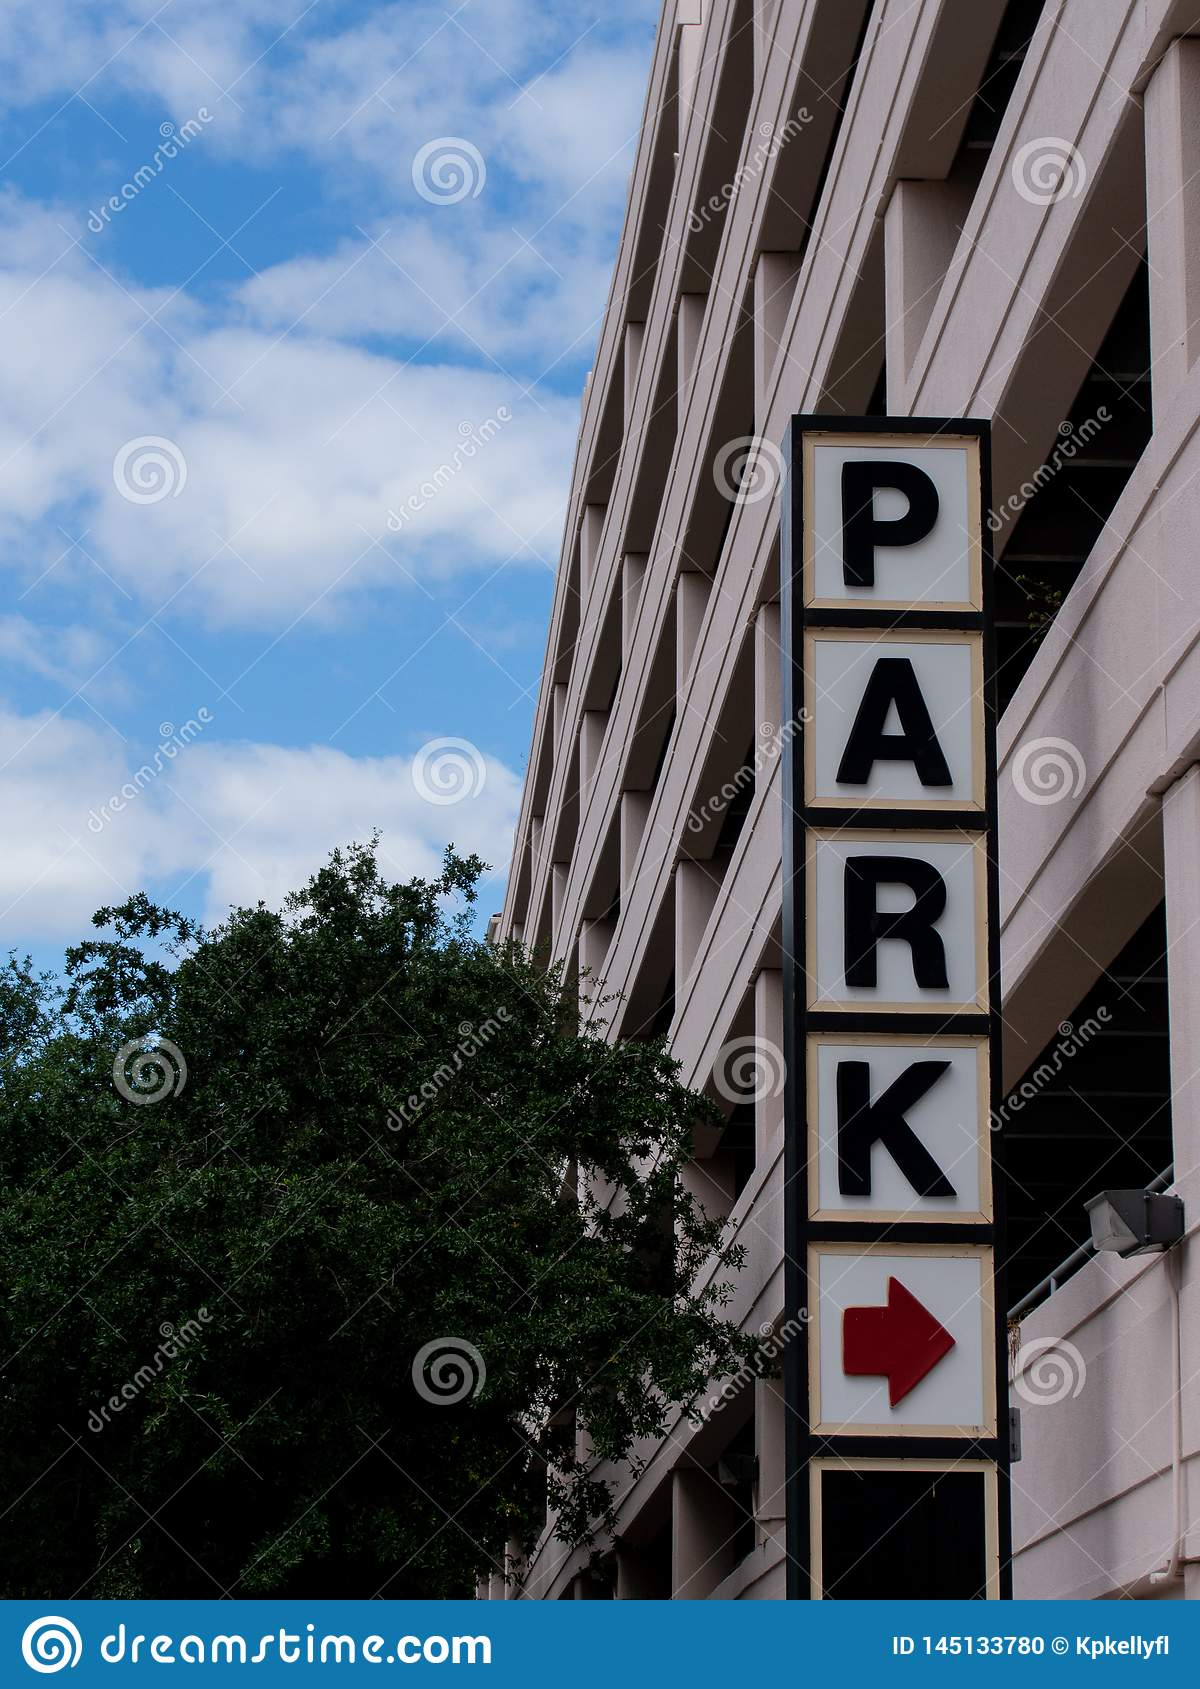 Park sign outside of a parking garage